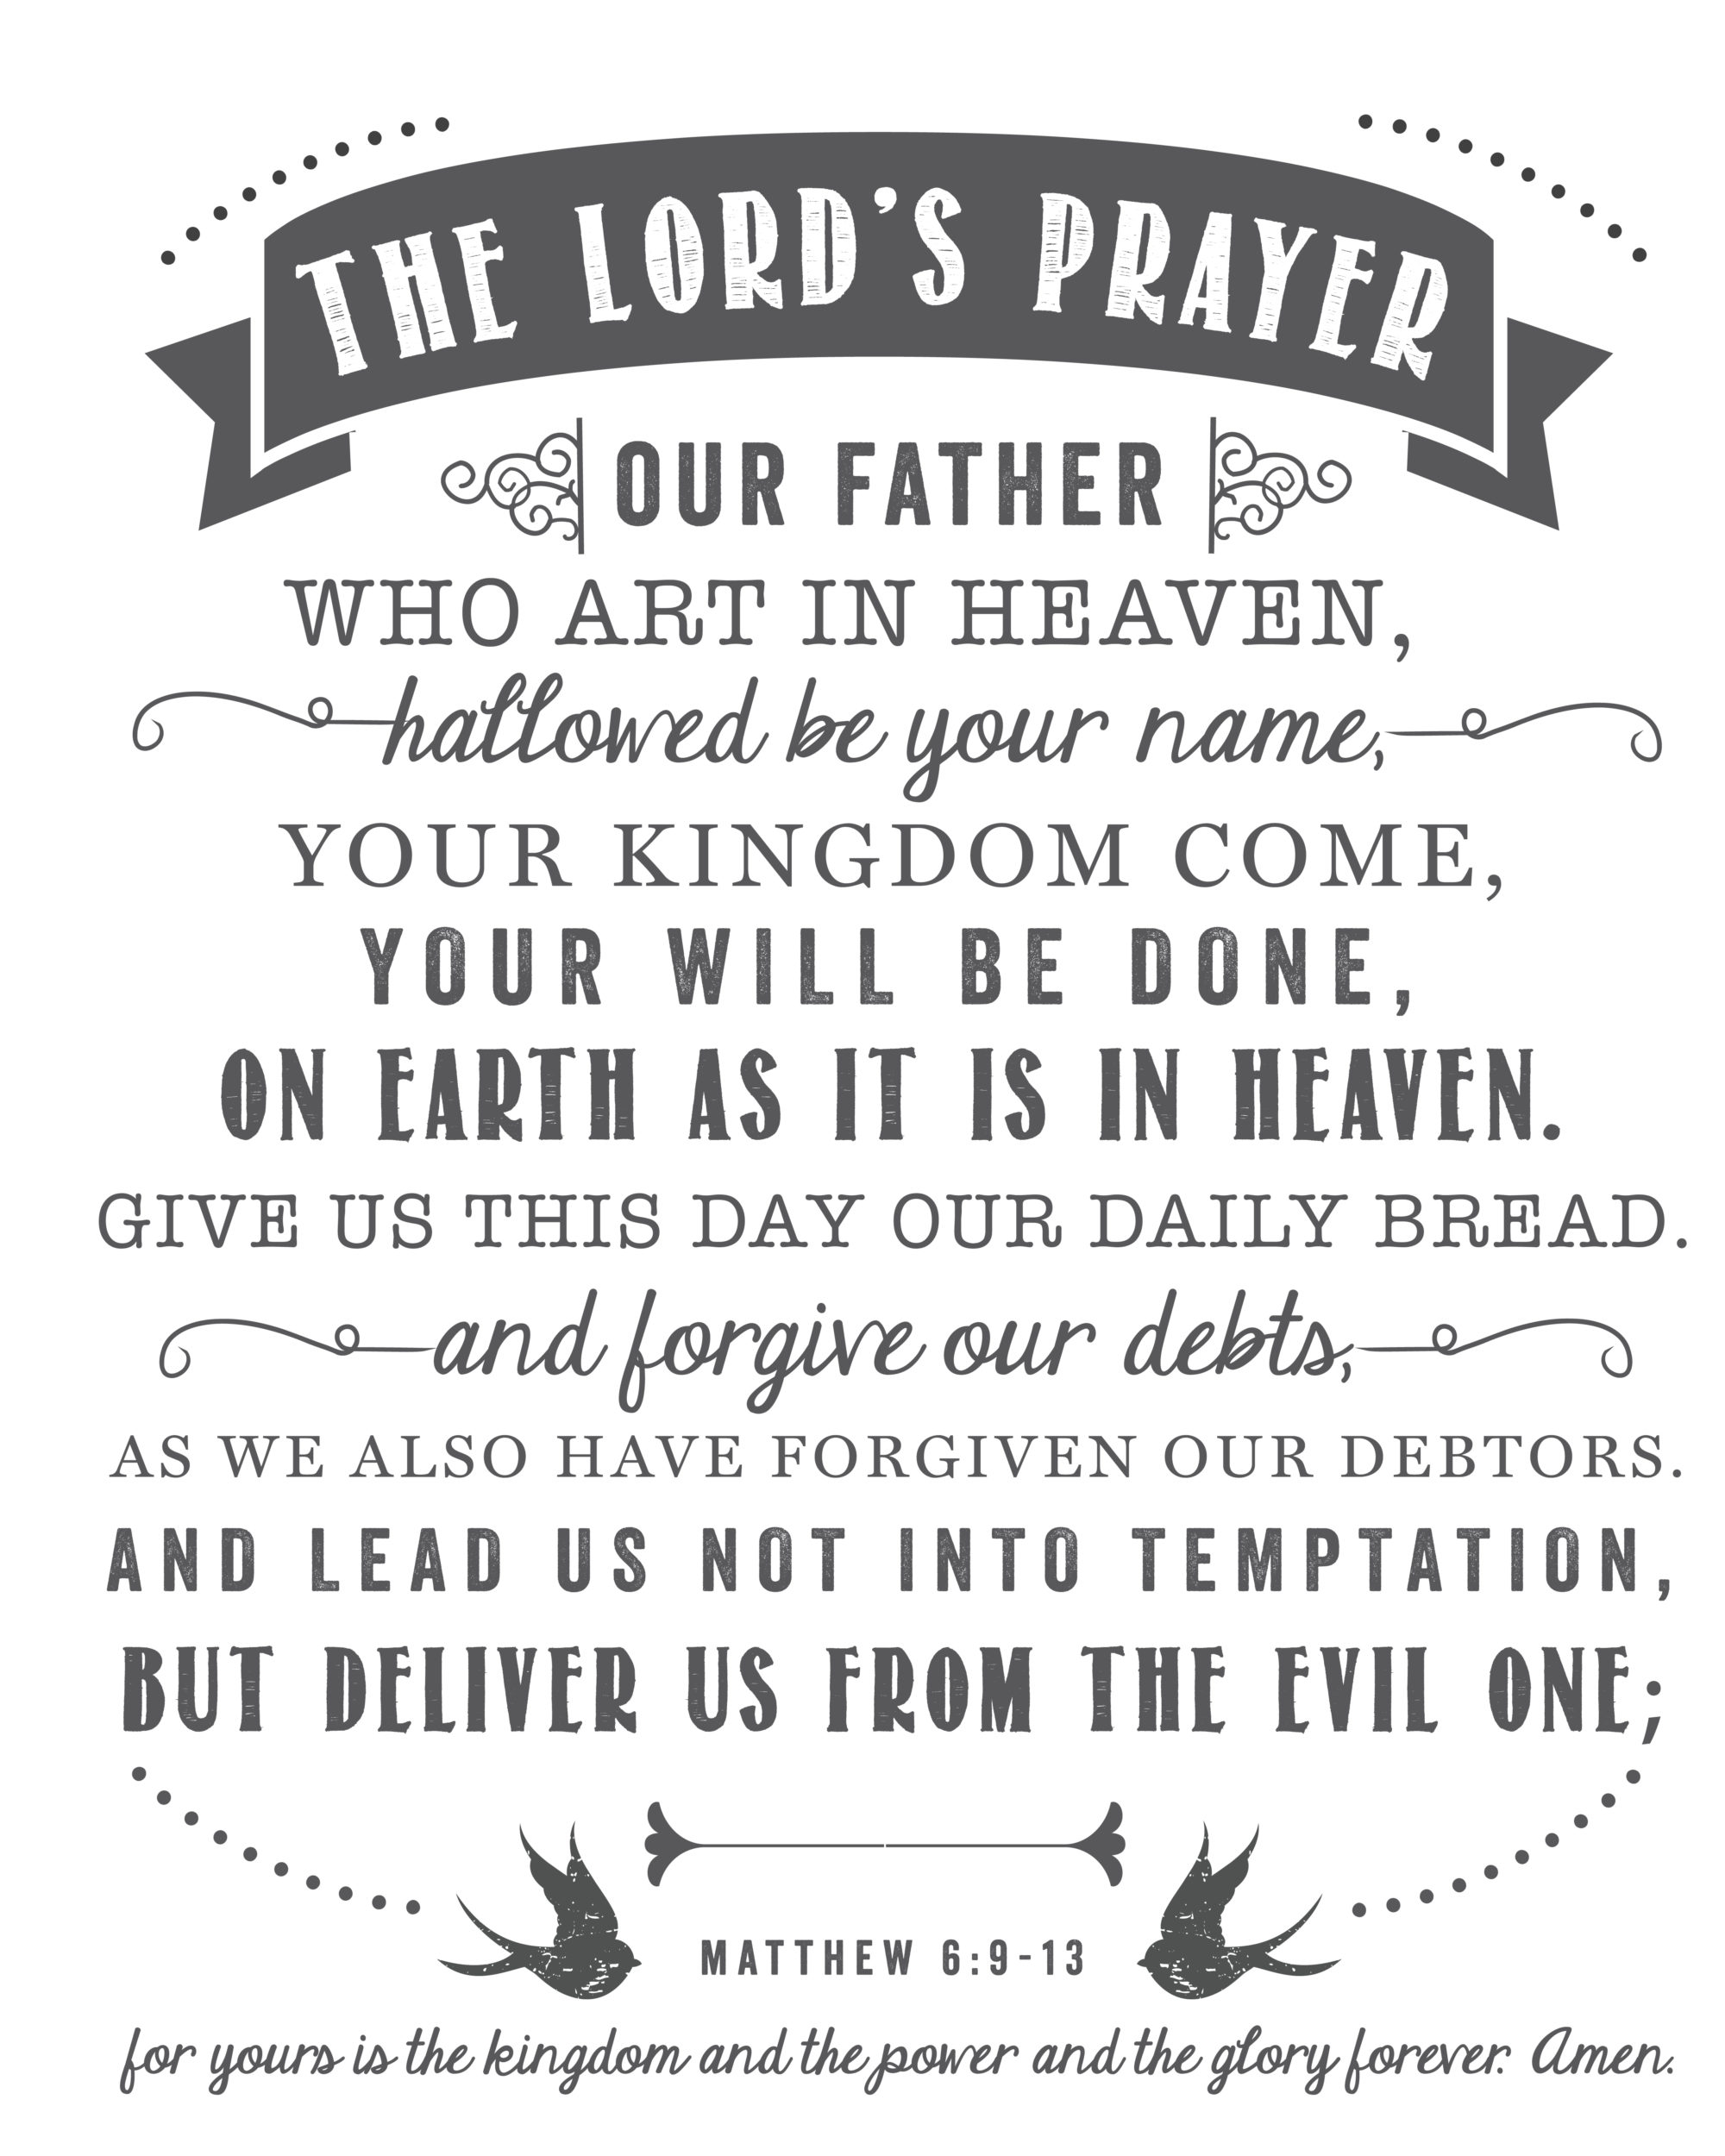 The Lord's Prayer | Free Printable - Sincerely, Sara D